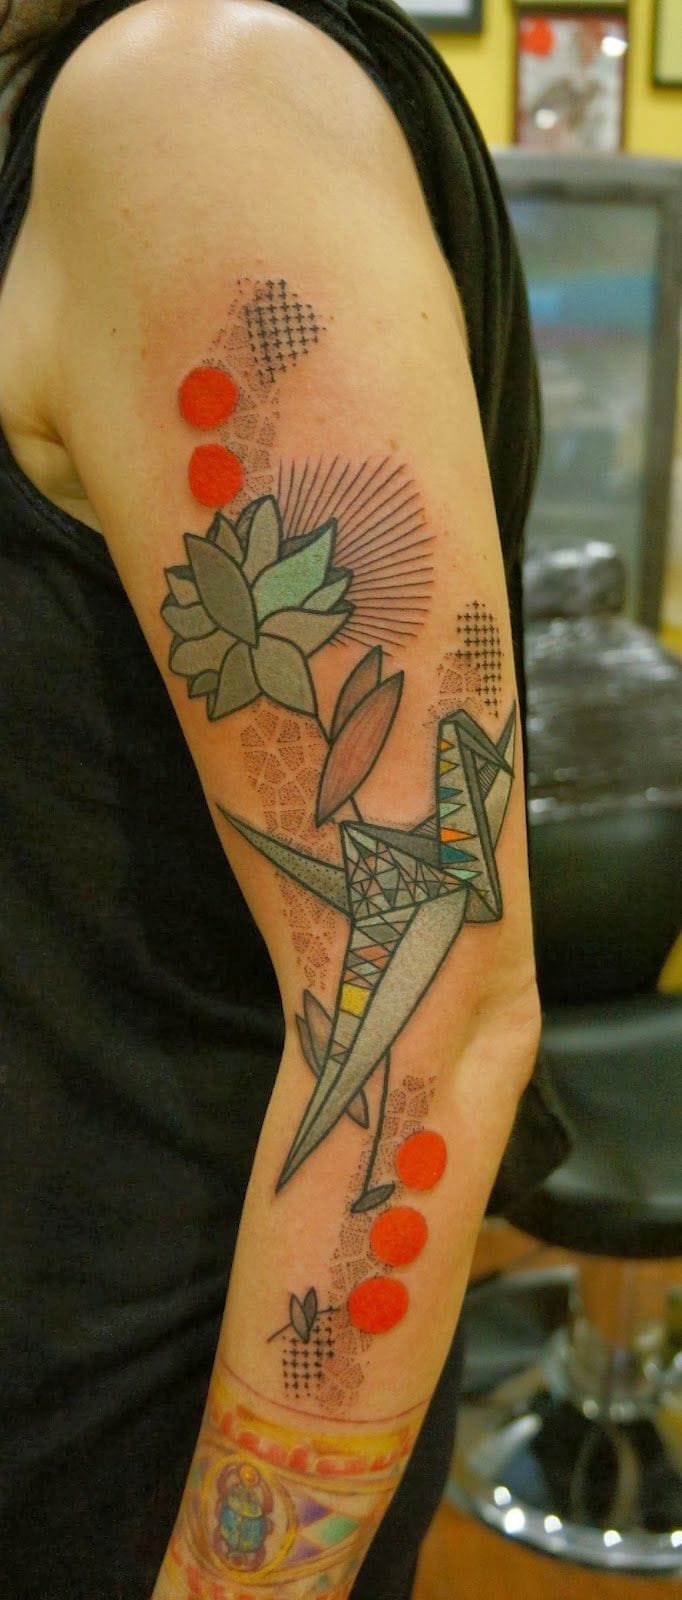 Gorgeous graphic tattoo by NOON!